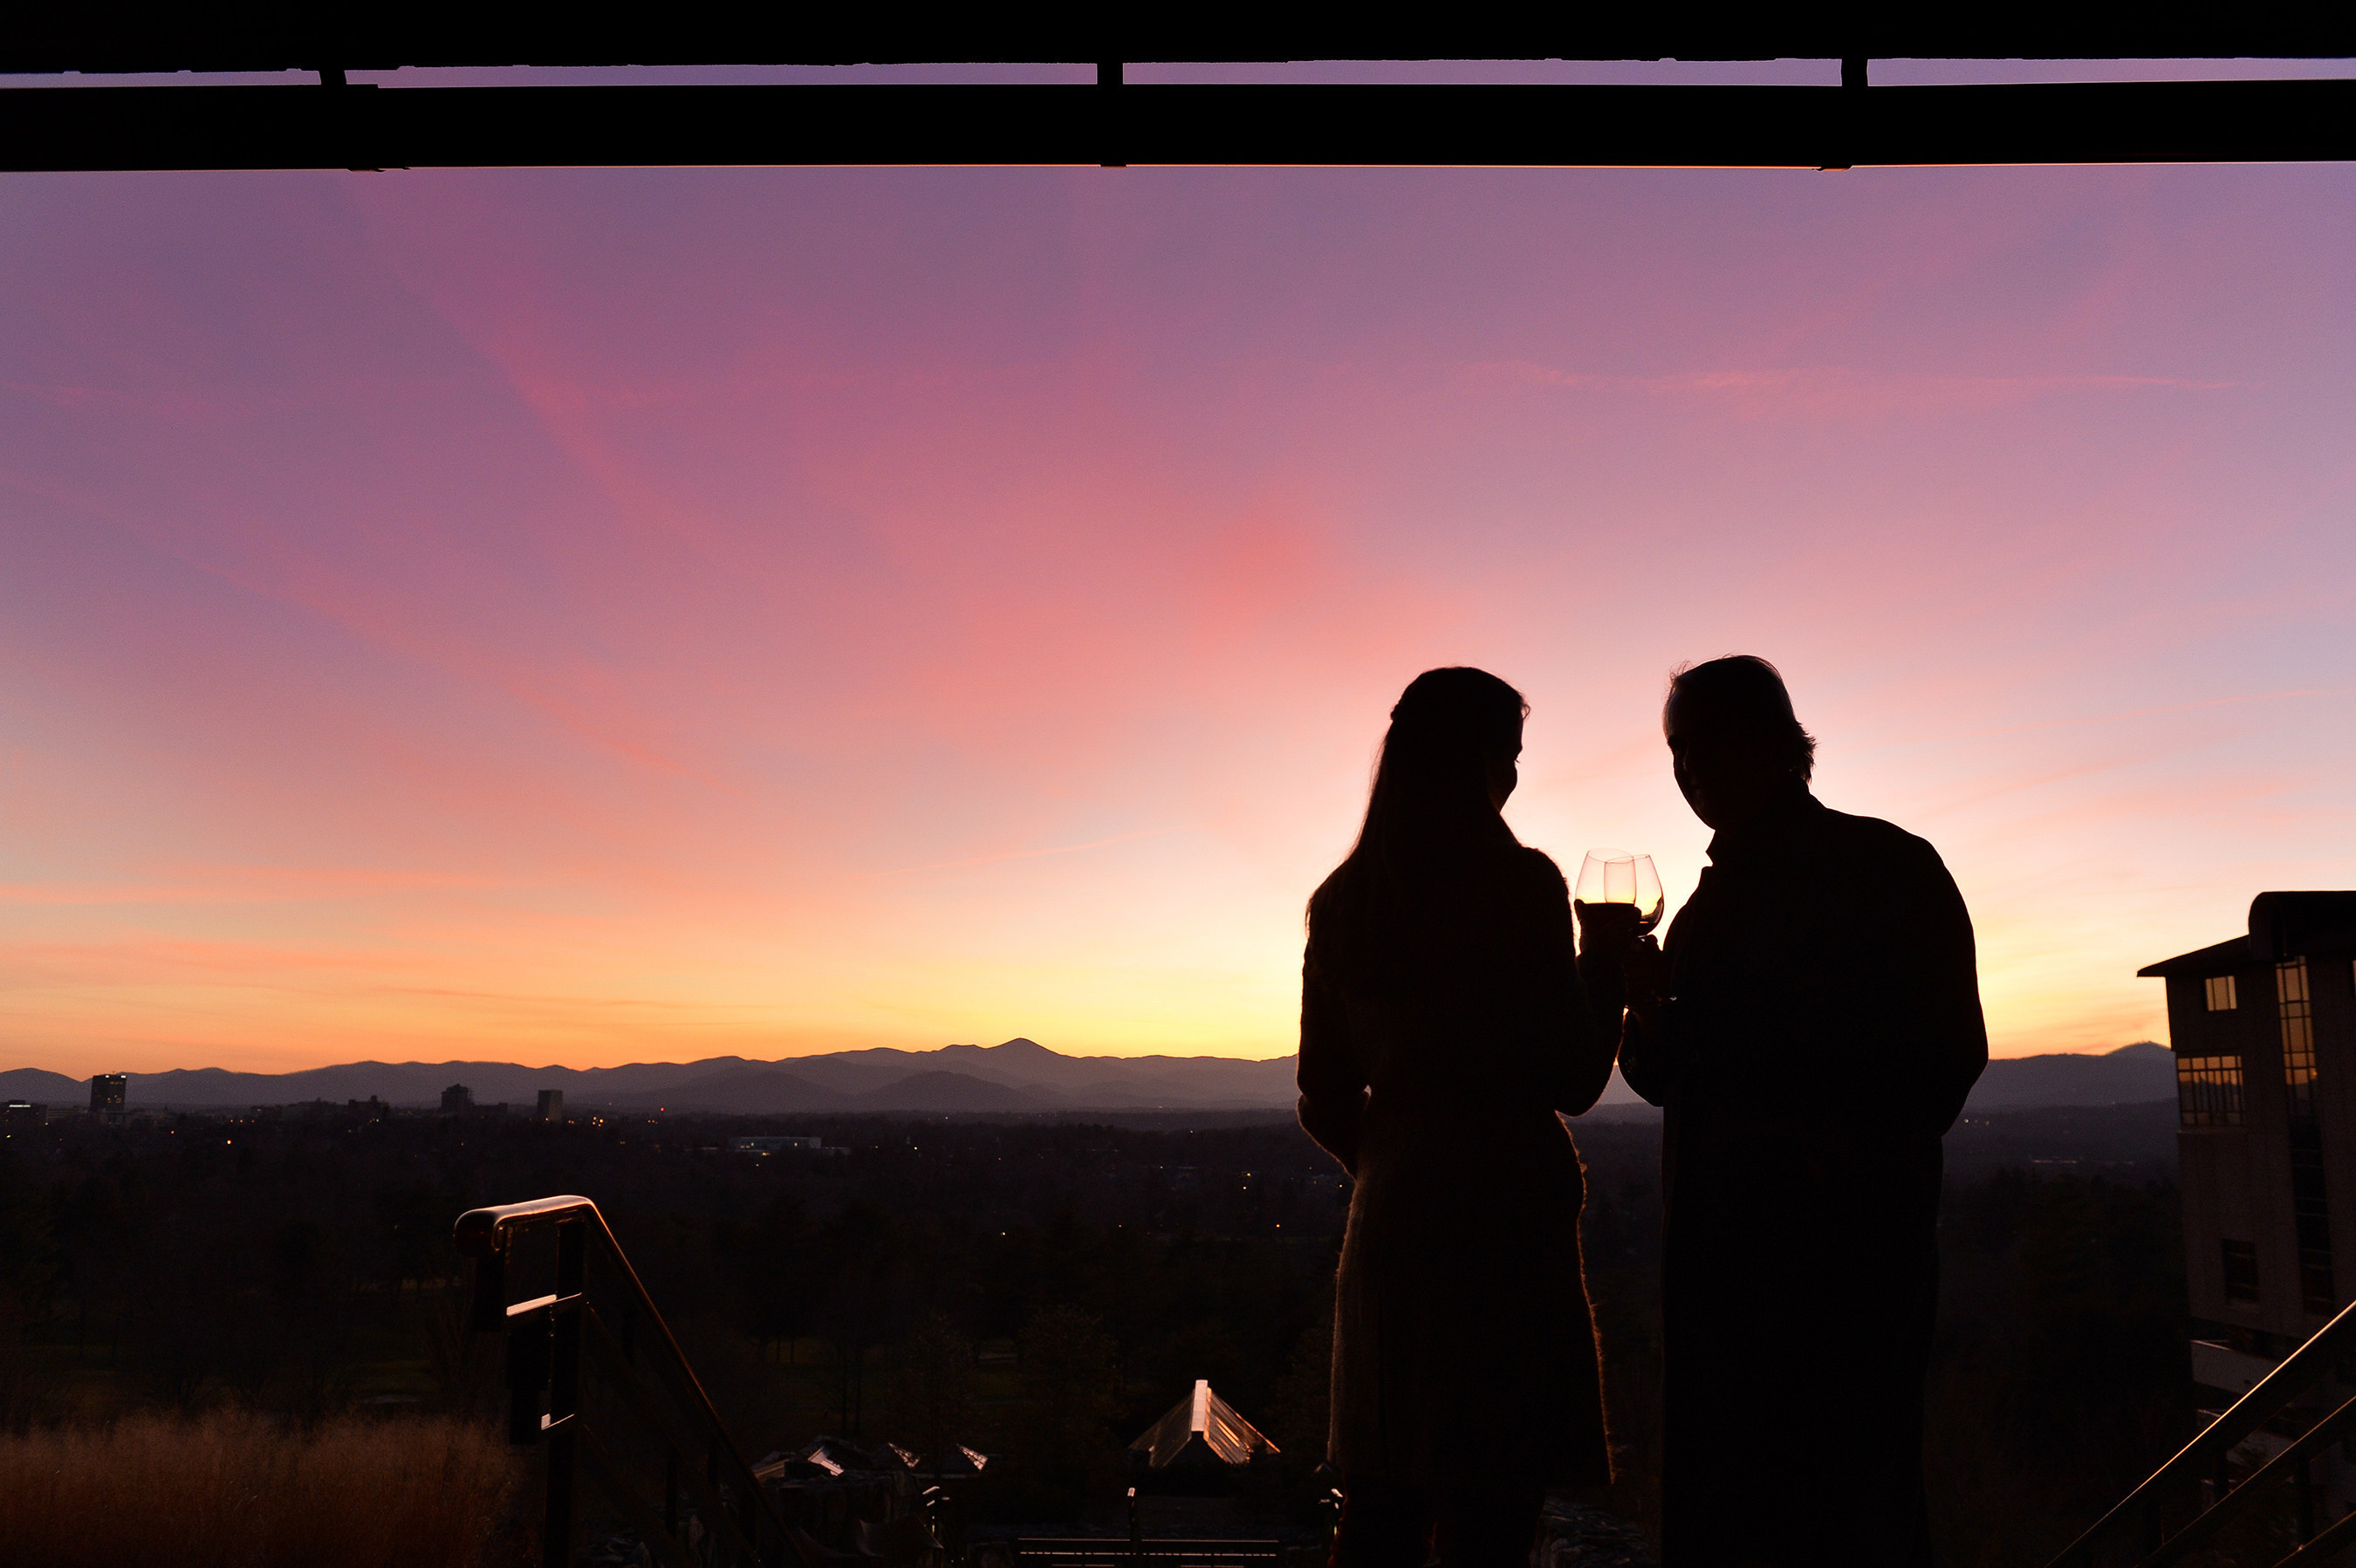 Nestled in the Blue Ridge Mountains, Asheville has long attracted those seeking escape, adventure and romance. With more than 250 independent restaurants, 21 local breweries, a walkable downtown, an eclectic art and culture scene and a myriad of accommodation choices, Asheville makes for a cozy, romantic getaway location.  (Photo courtesy of ExploreAsheville.com)